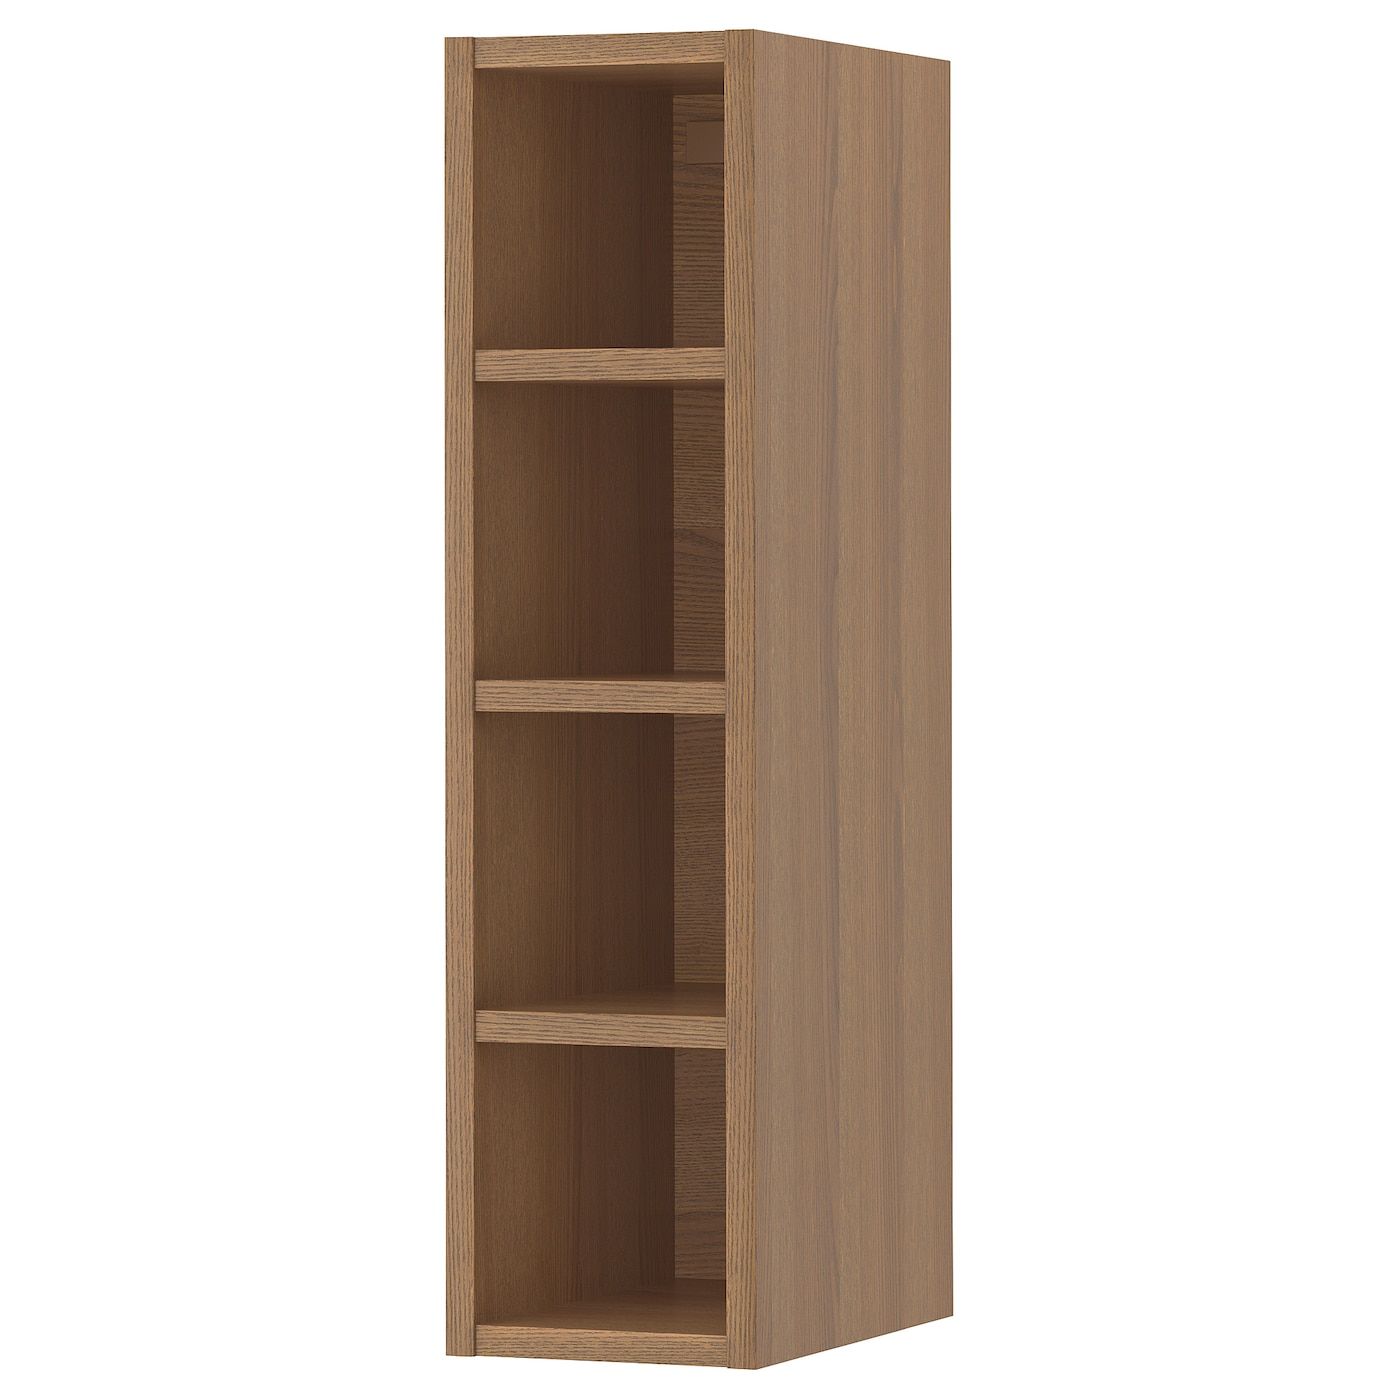 IKEA VADHOLMA open storage Makes the contents of the cabinet easy to overview and access.